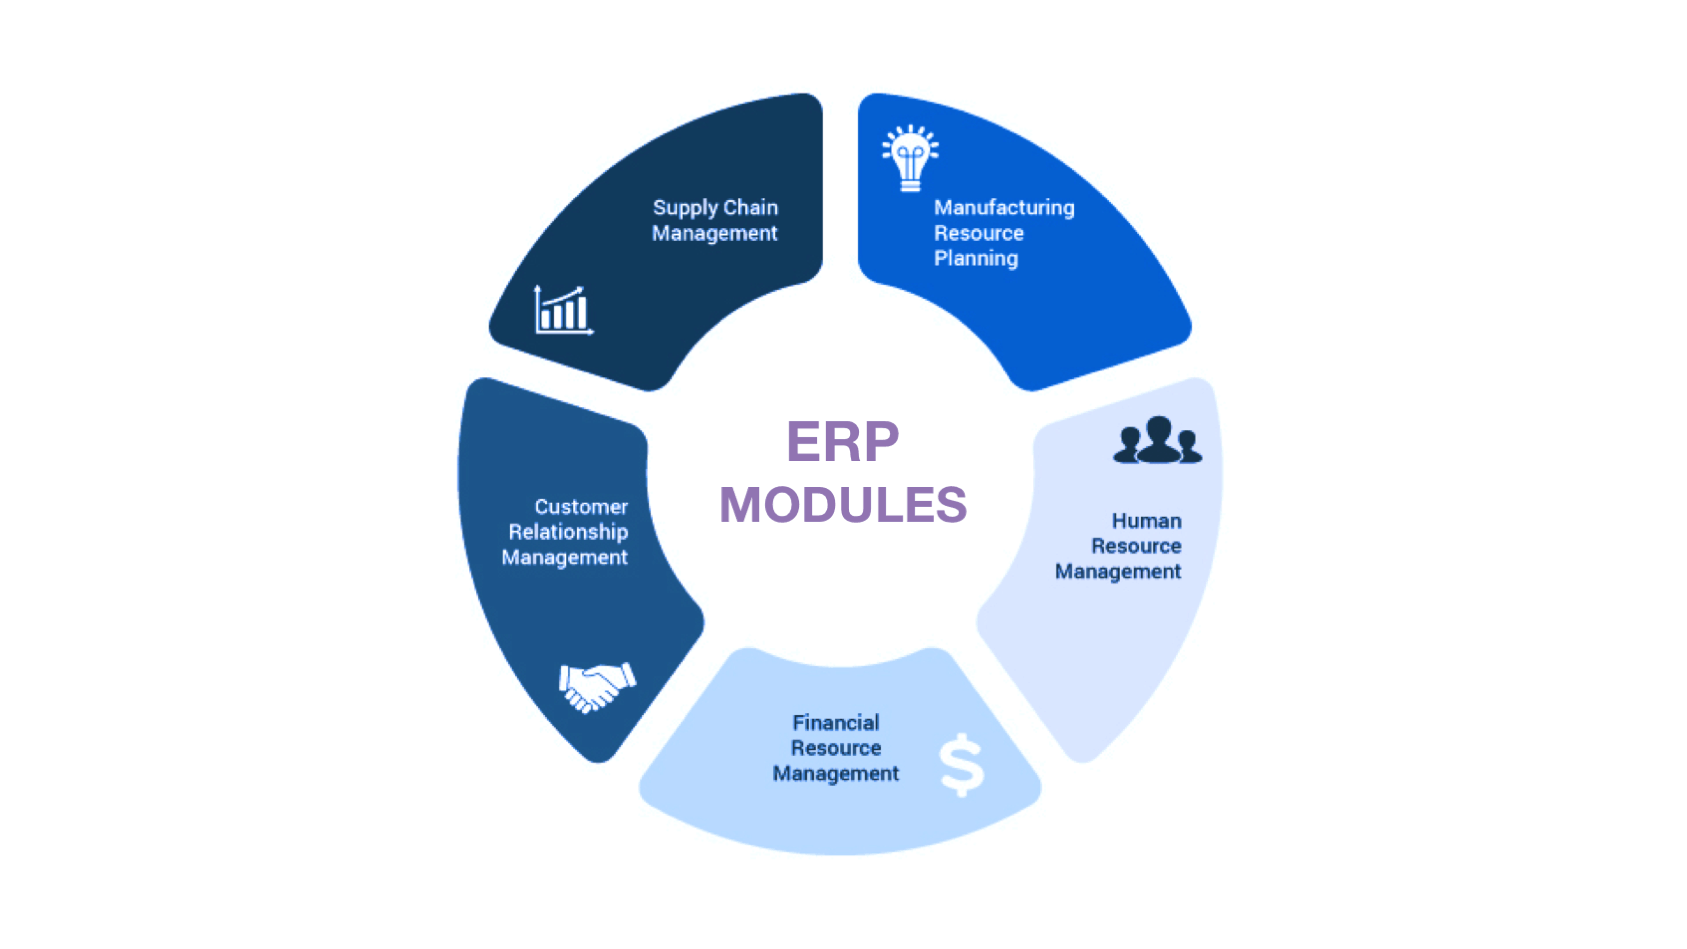 How to build an ERP from scratch - most commonly implemented modules